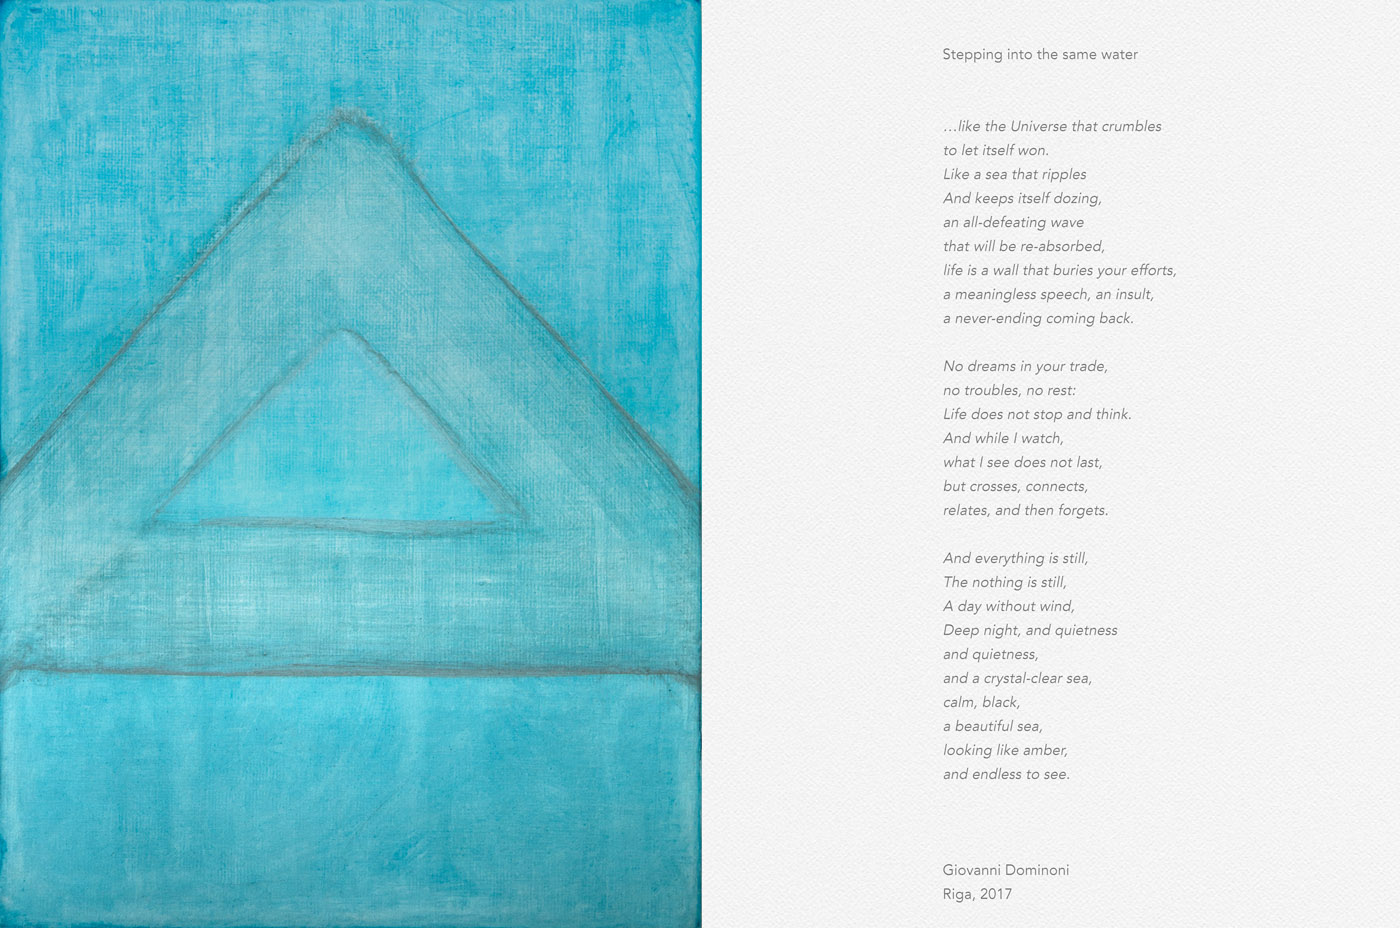 Giovanni Dominoni, Stepping into the same water, Artwork and Poem